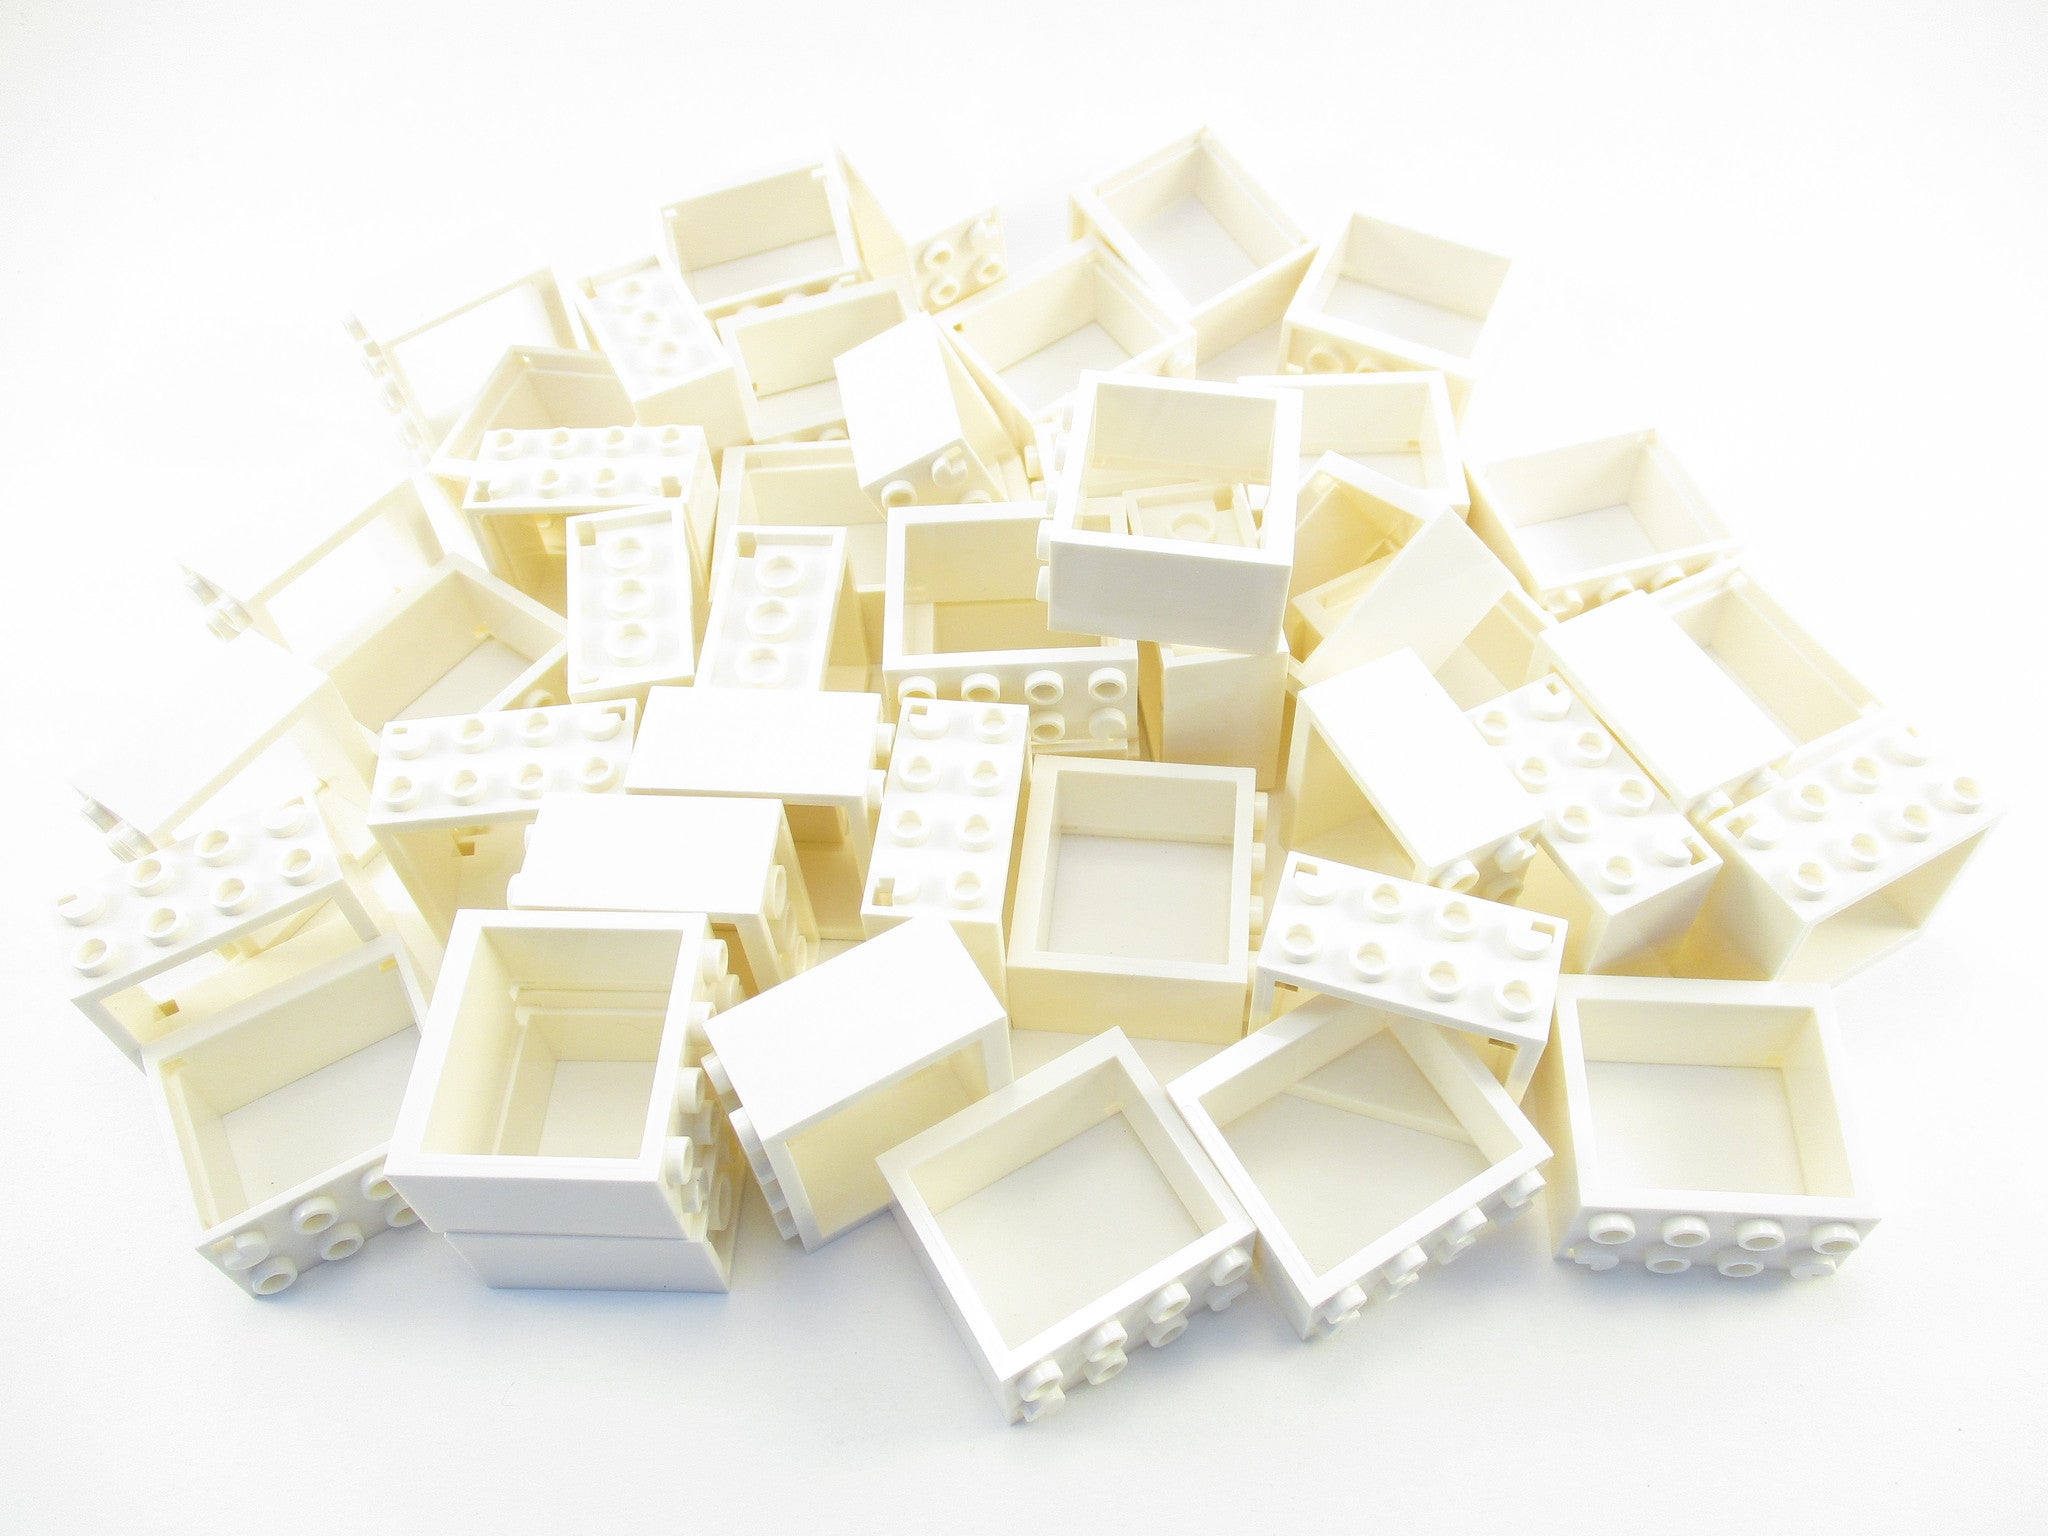 LEGO White Window 2 x 4 x 3 Frame Lot of 25 Parts Pieces 60598 ...